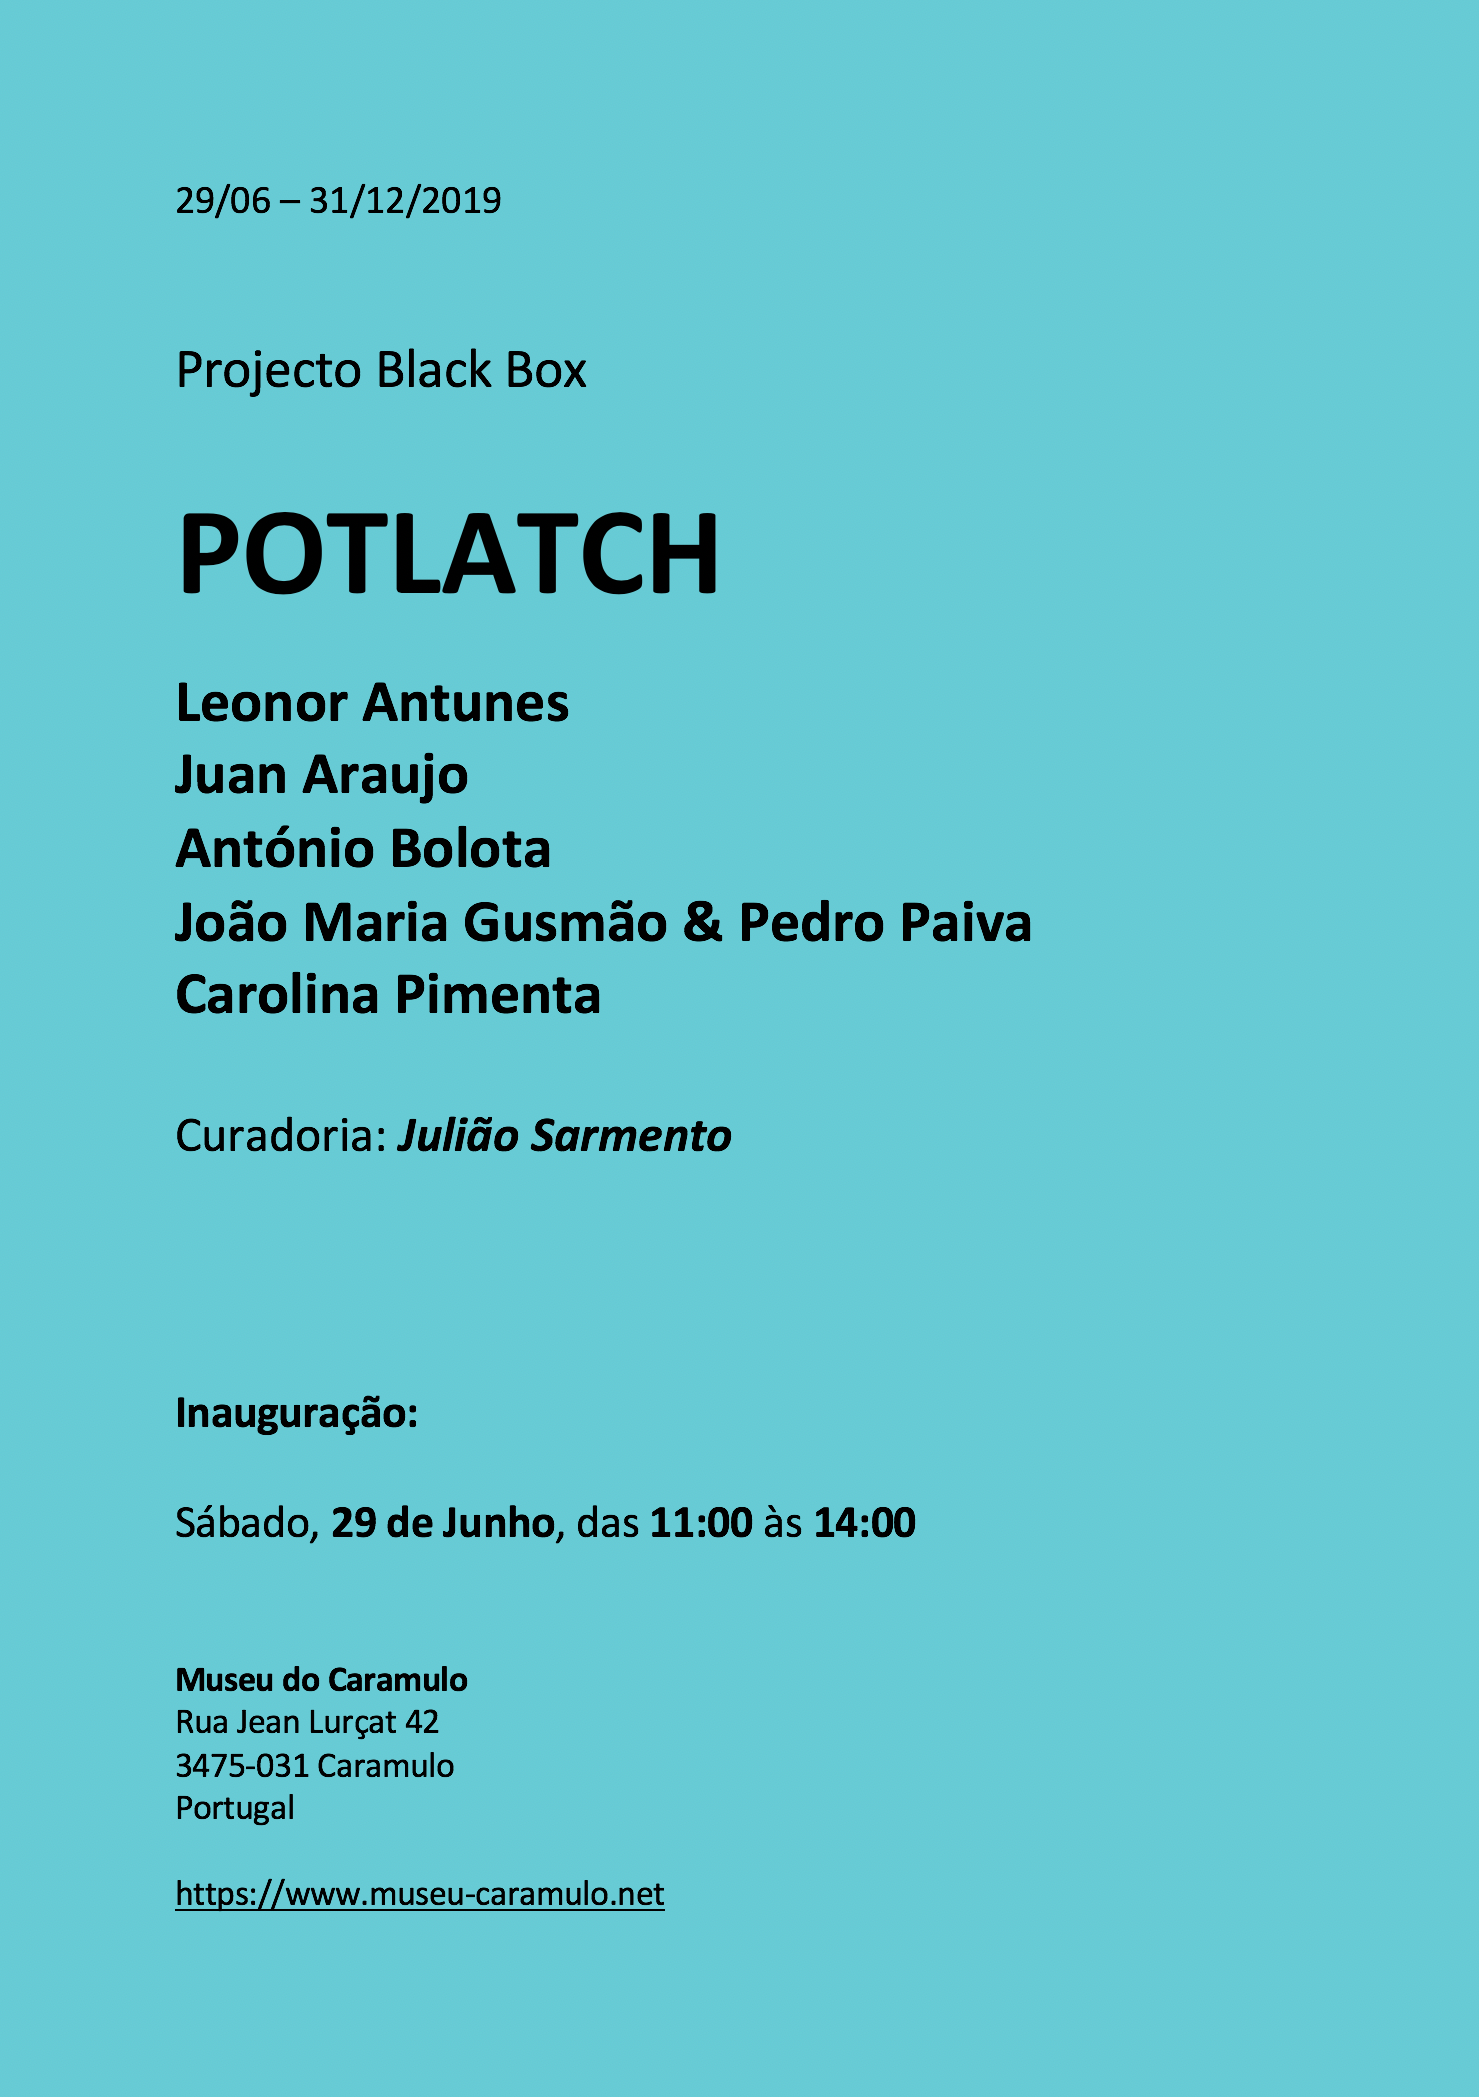 """Potlatch ,  Museu do Caramulo , Caramulo, PT, 29 July - 29 December 2019  Museu do Caramulo opens the 3rd Black Box cycle exhibition under the title of """" Potlatch """". Curated by Julião Sarmento, the exhibition brings together six leading artists of contemporary art, namely Leonor Antunes, Juan Araujo, João Maria Gusmão & Pedro Paiva, António Bolota and Carolina Pimenta. Opening Saturday 19th of June, 5pm."""